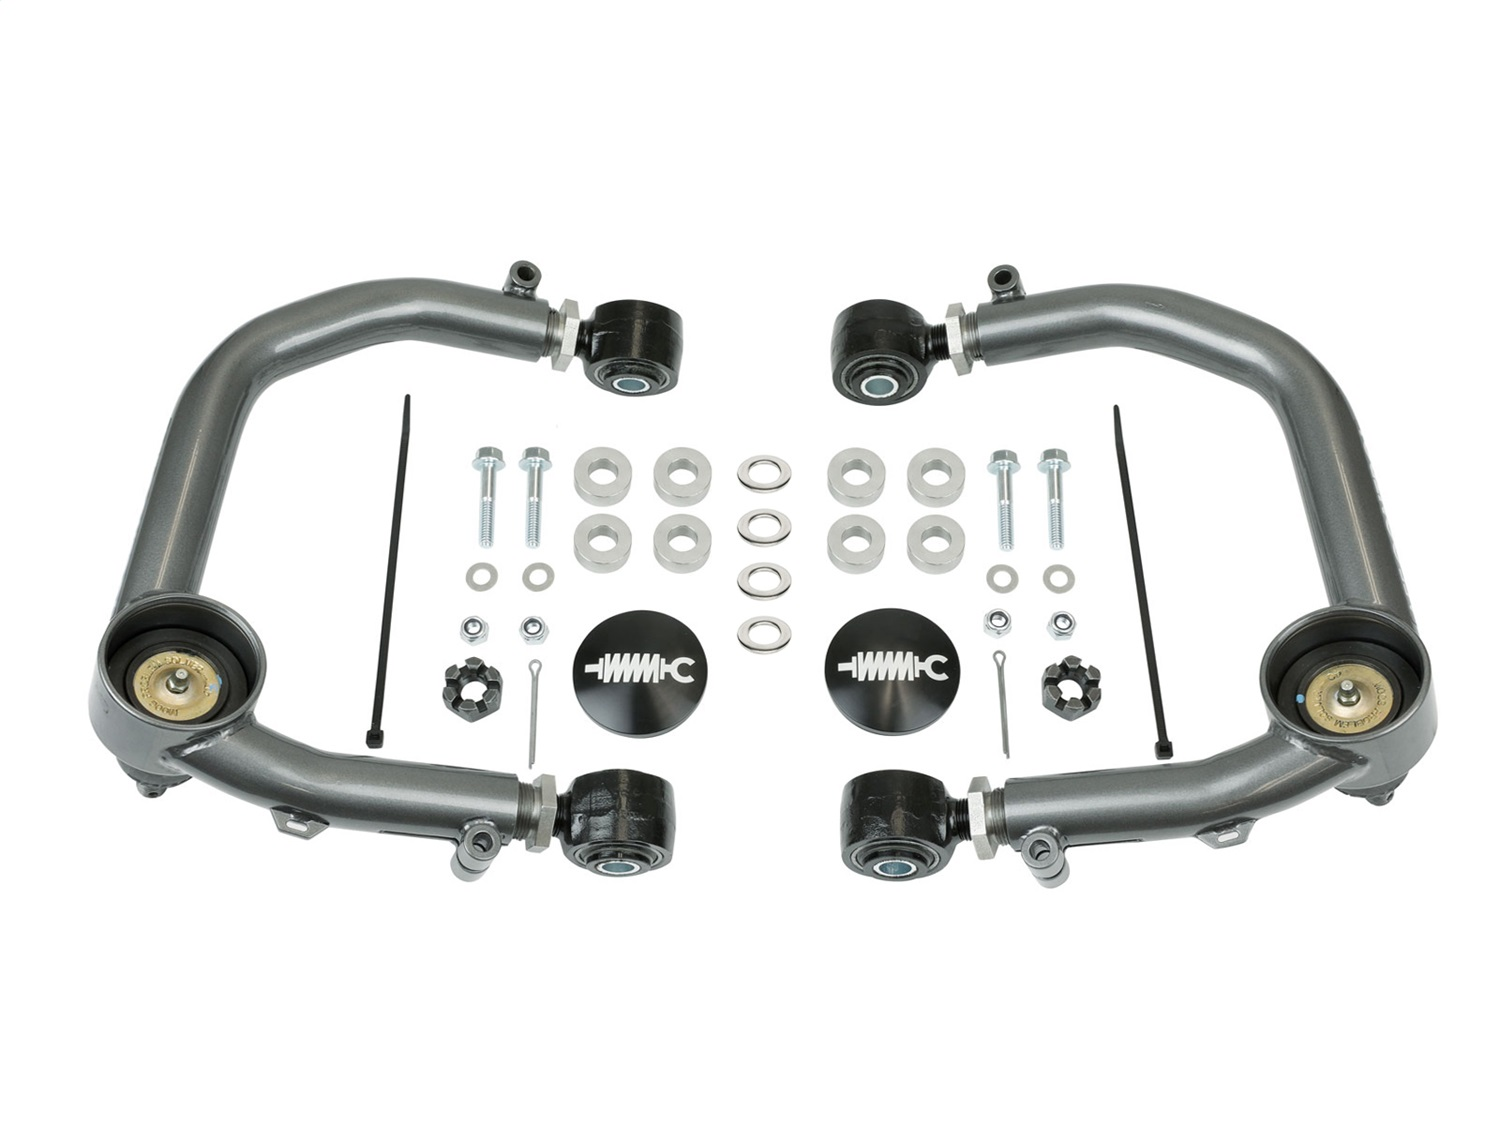 AFE Filters 460-72T001-G aFe Control Upper Control Arm Kit Fits 05-21 Tacoma